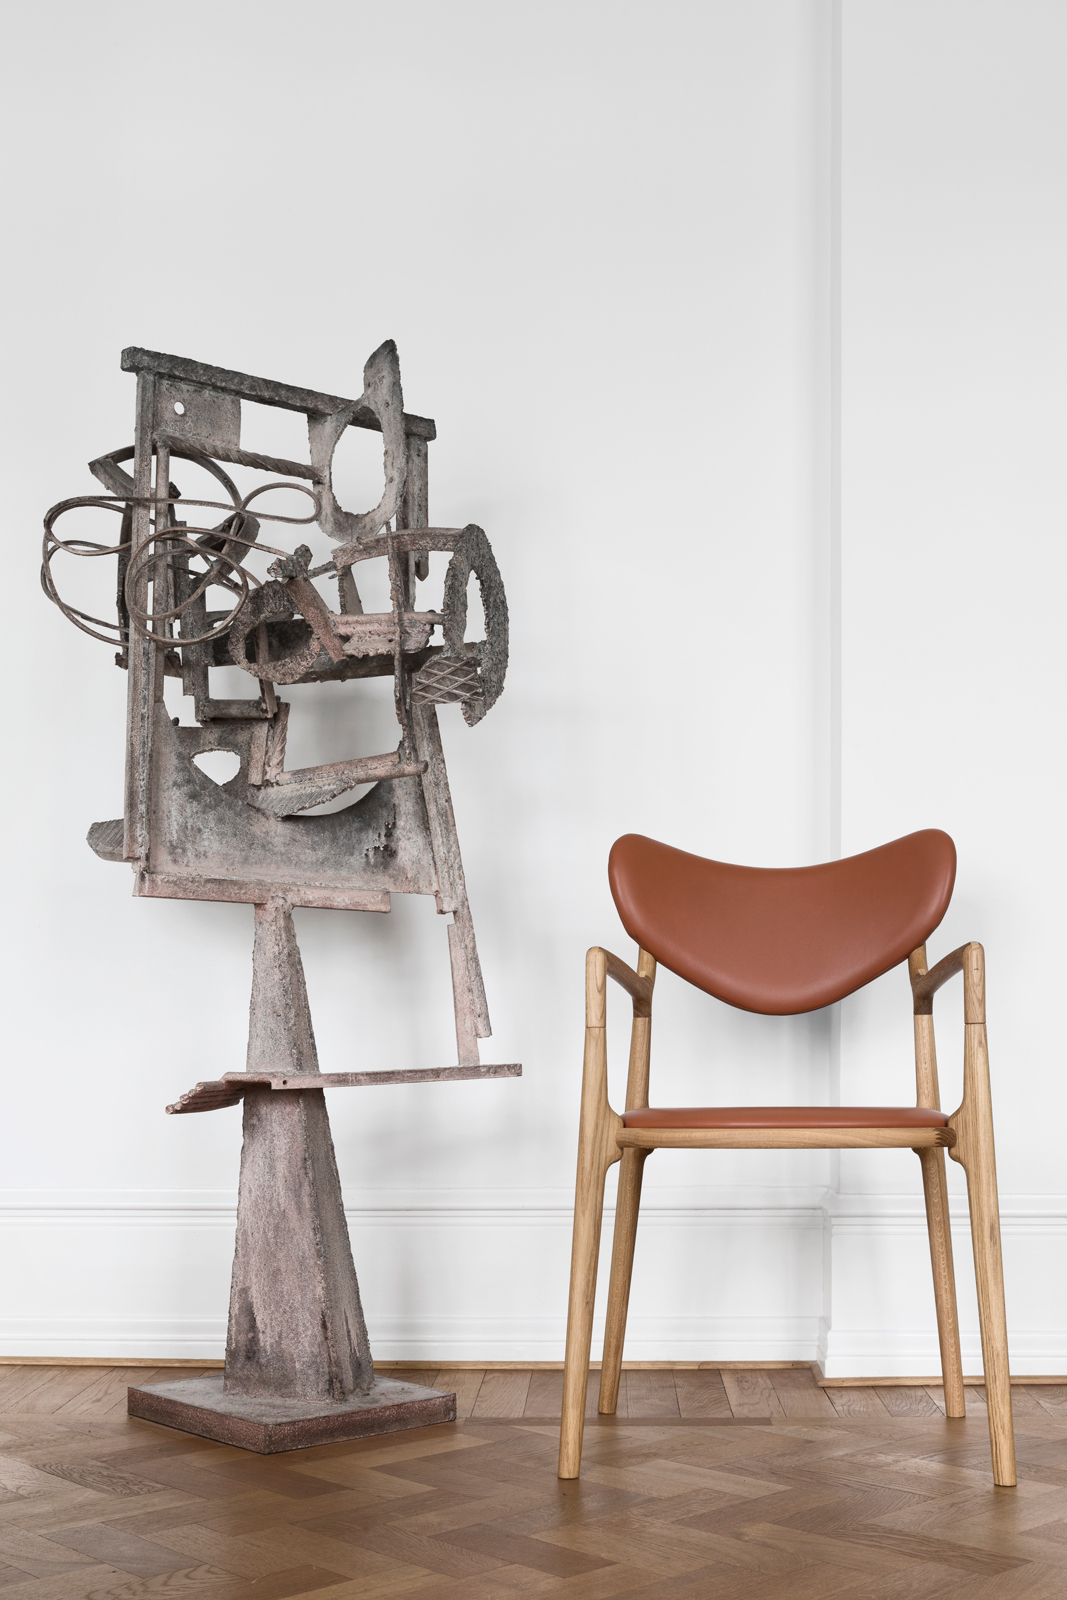 Truenorth-Designs_Salon_Chair_Robert-Jacobsen_Sculpture_Design_Asger-Soelberg_01.jpg